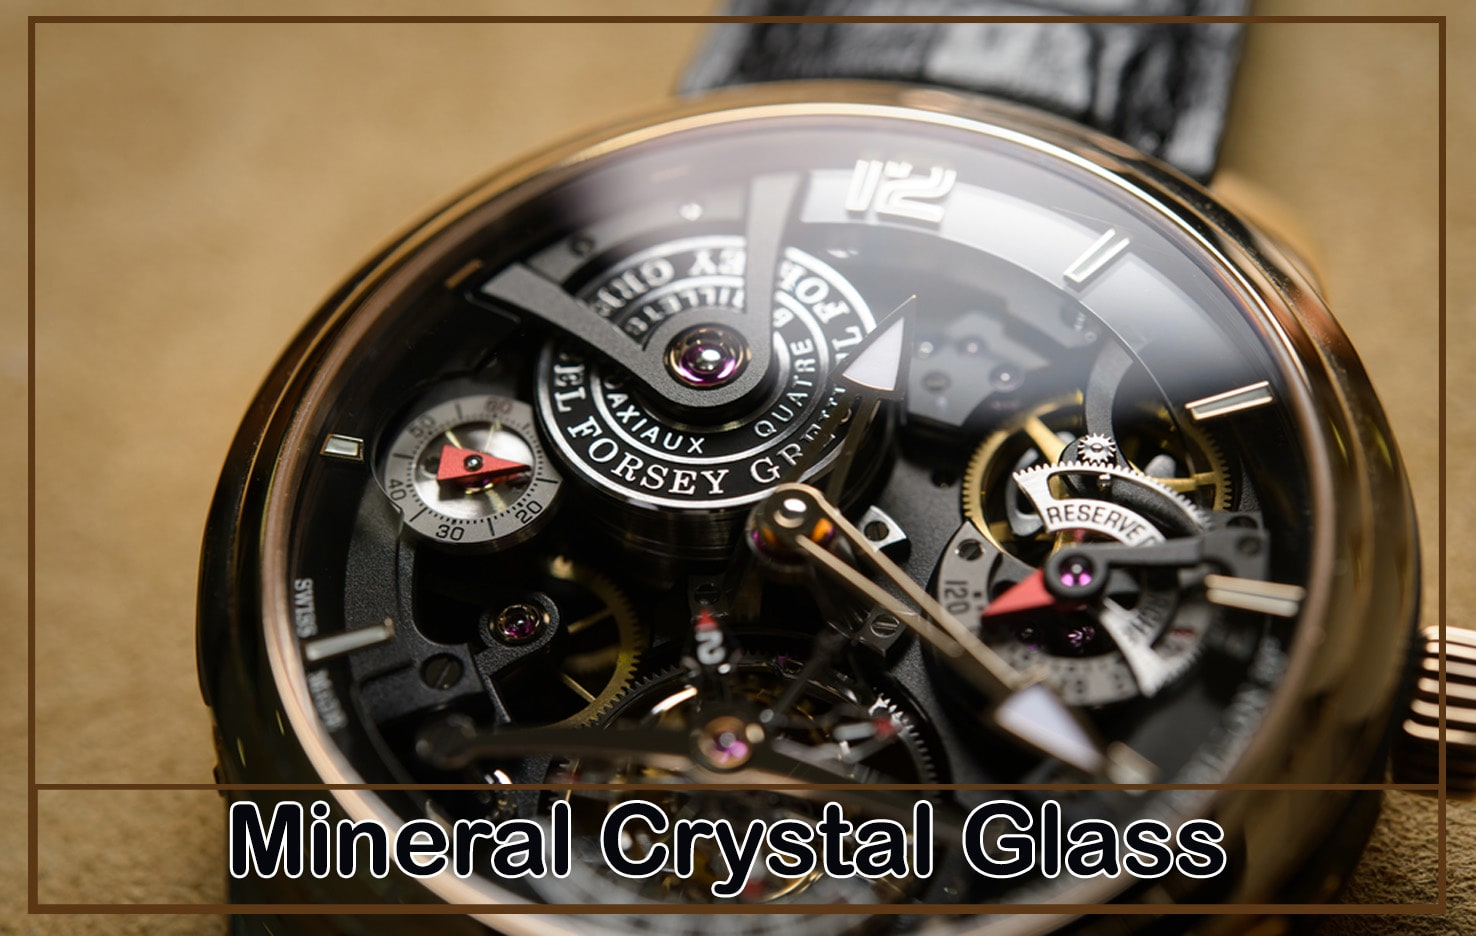 Mineral Crystal Glass